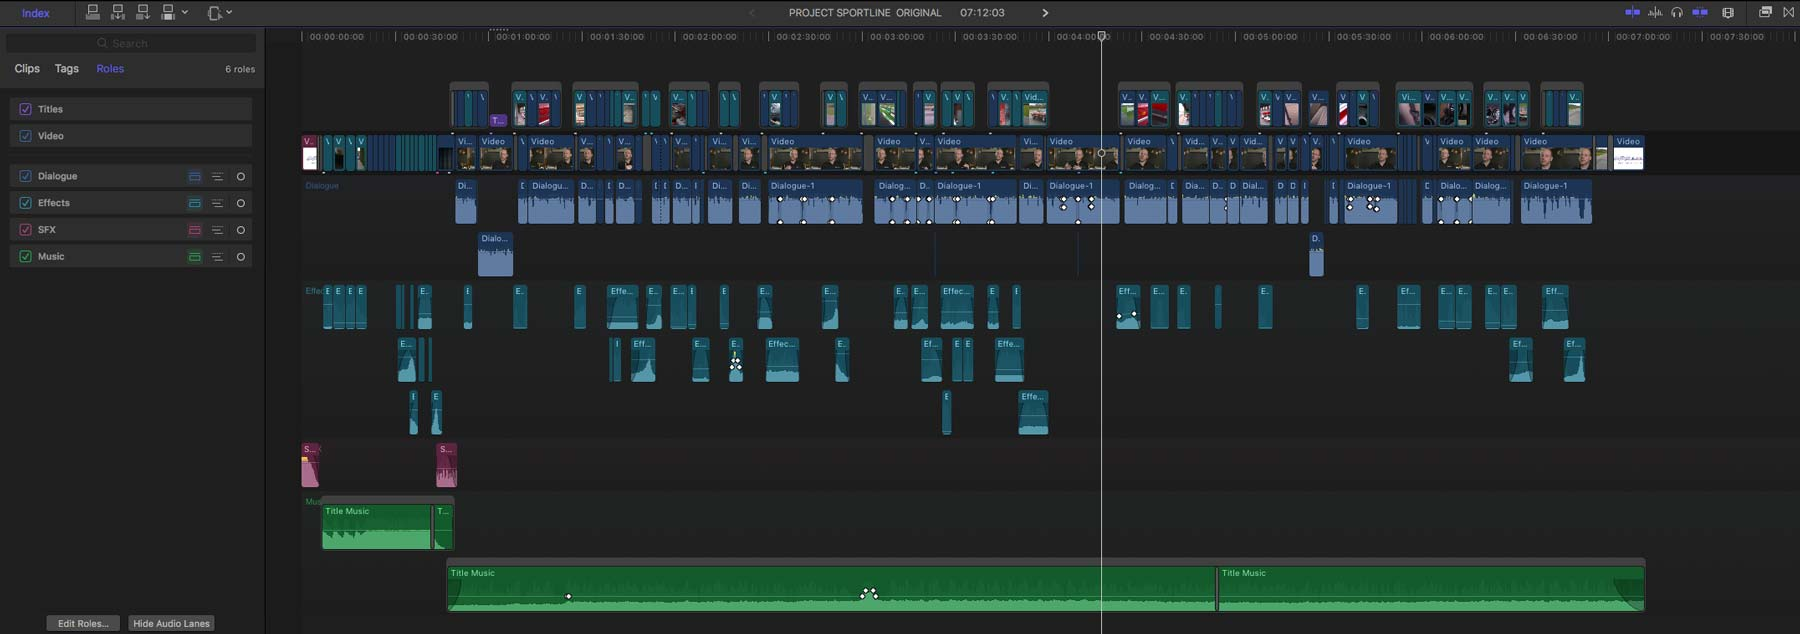 FCPX for Premiere 2 16